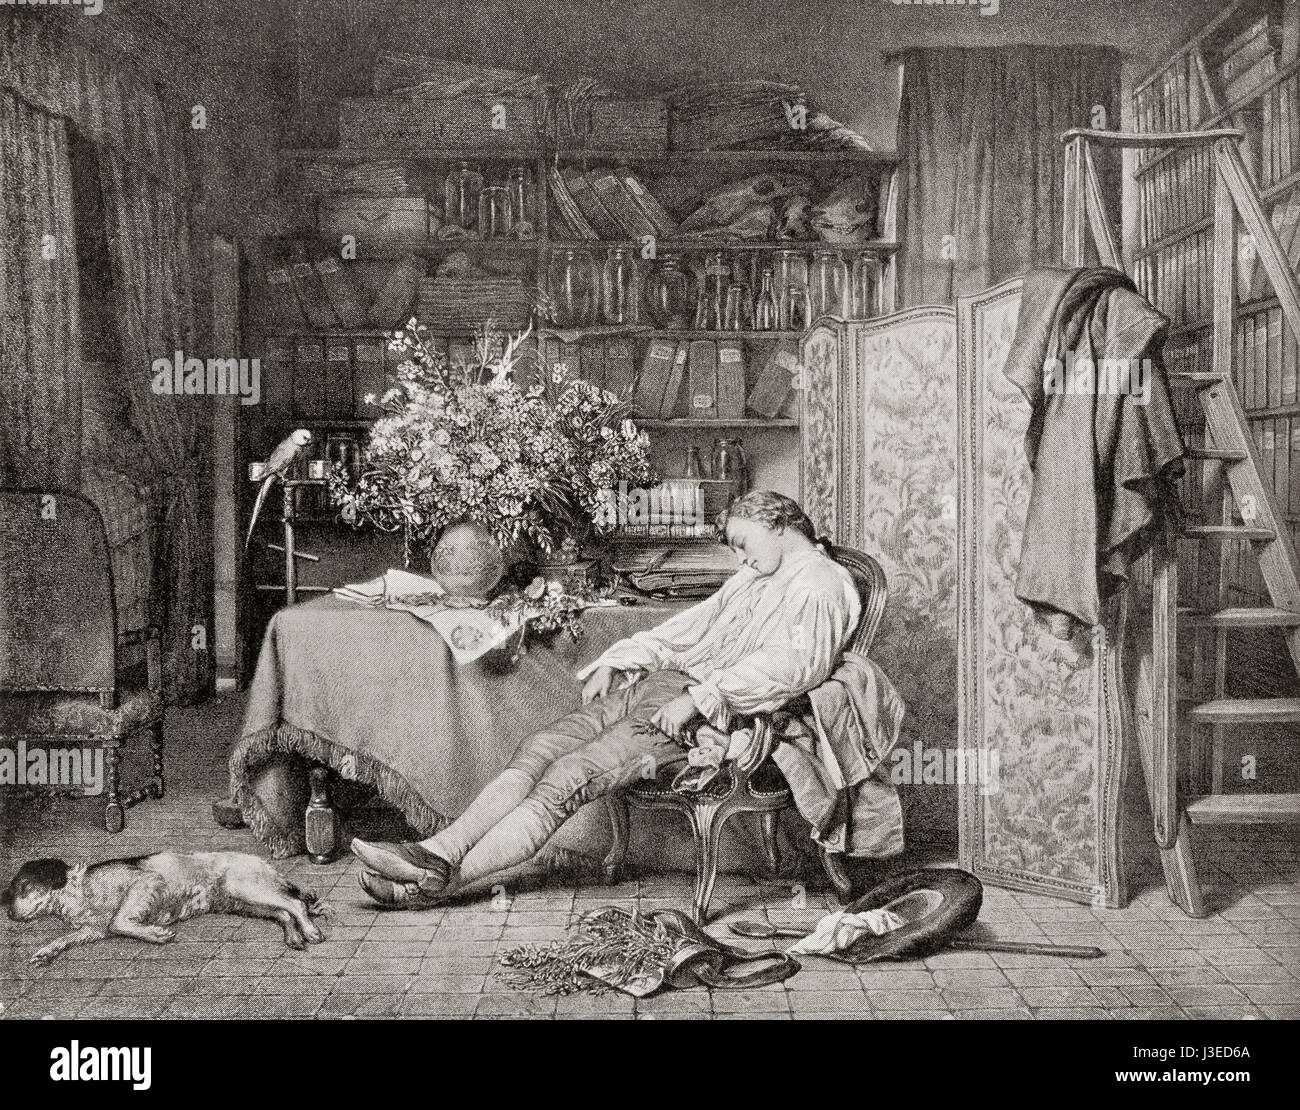 Linnaeus at home asleep in a chair after returning from one of his botanical excursions.  Carl Linnaeus, 1707 – 1778, aka Carl von Linné.  Swedish botanist, physician, and zoologist.  From Hutchinson's History of the Nations, published 1915. Stock Photo